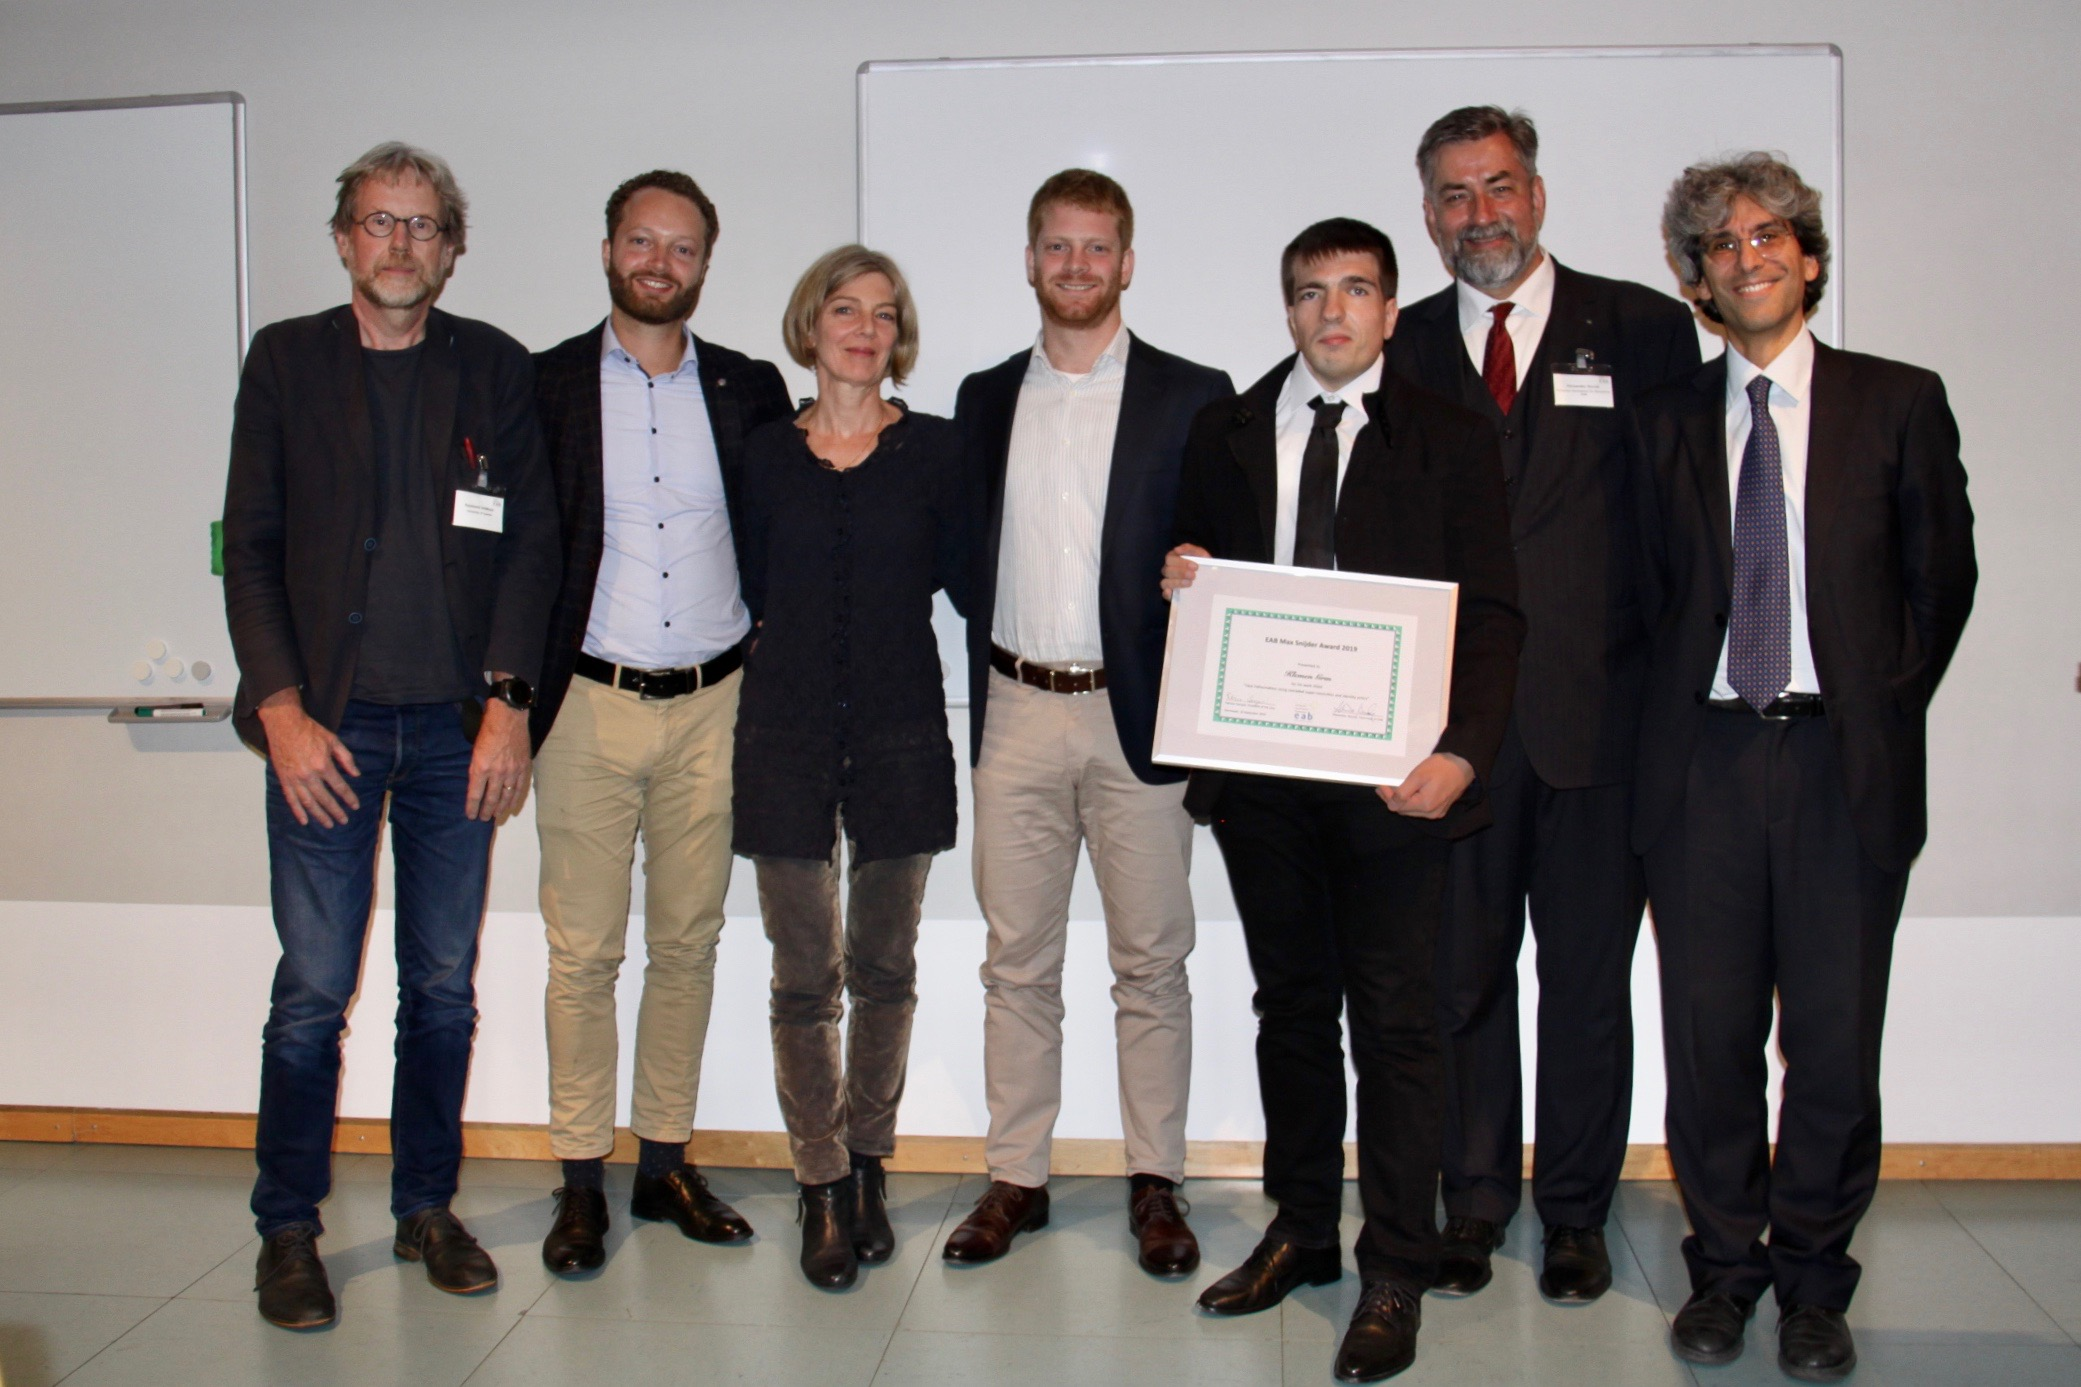 [Photo] Jury member Prof Raymond Veldhuis, Arthur Snijder, Carine Wouters, Caspar Snijder, the award winner Dr Klemen Grm together with the EAB chairman Alexander Nouak and the EAB award chair Prof Patrizio Campisi